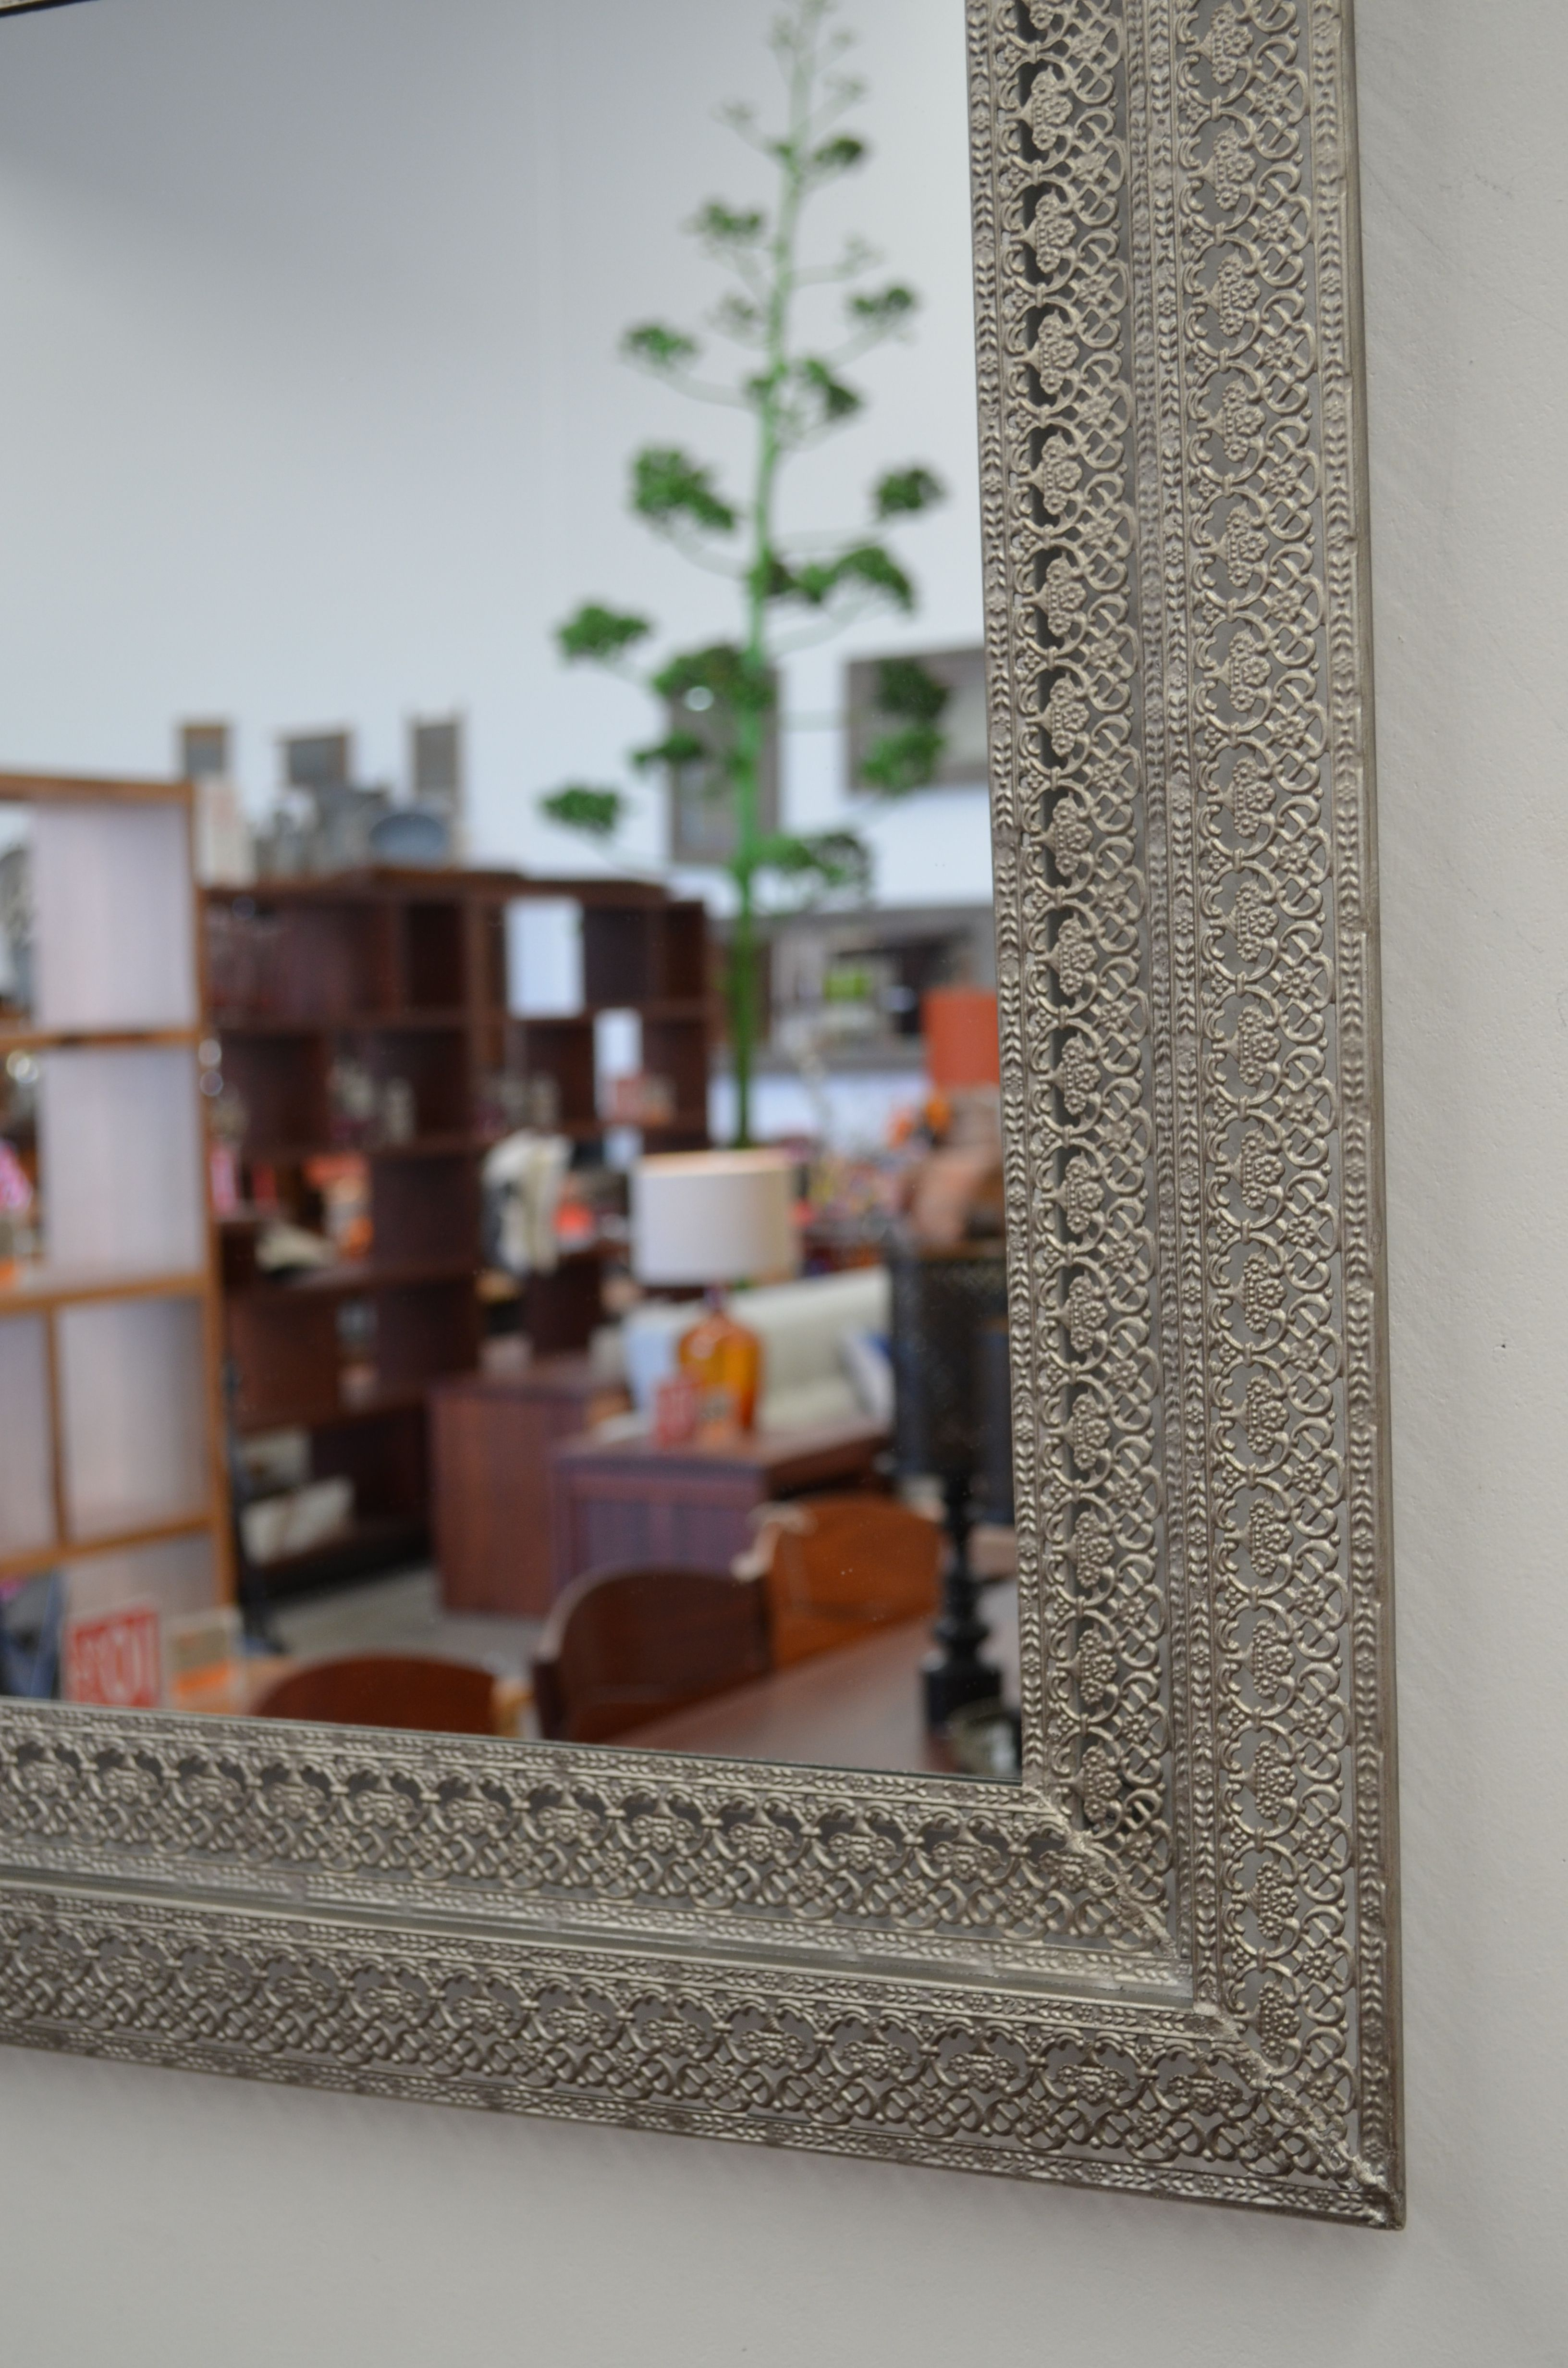 Mirror image in metallic lace at The General Store, Osborne Park